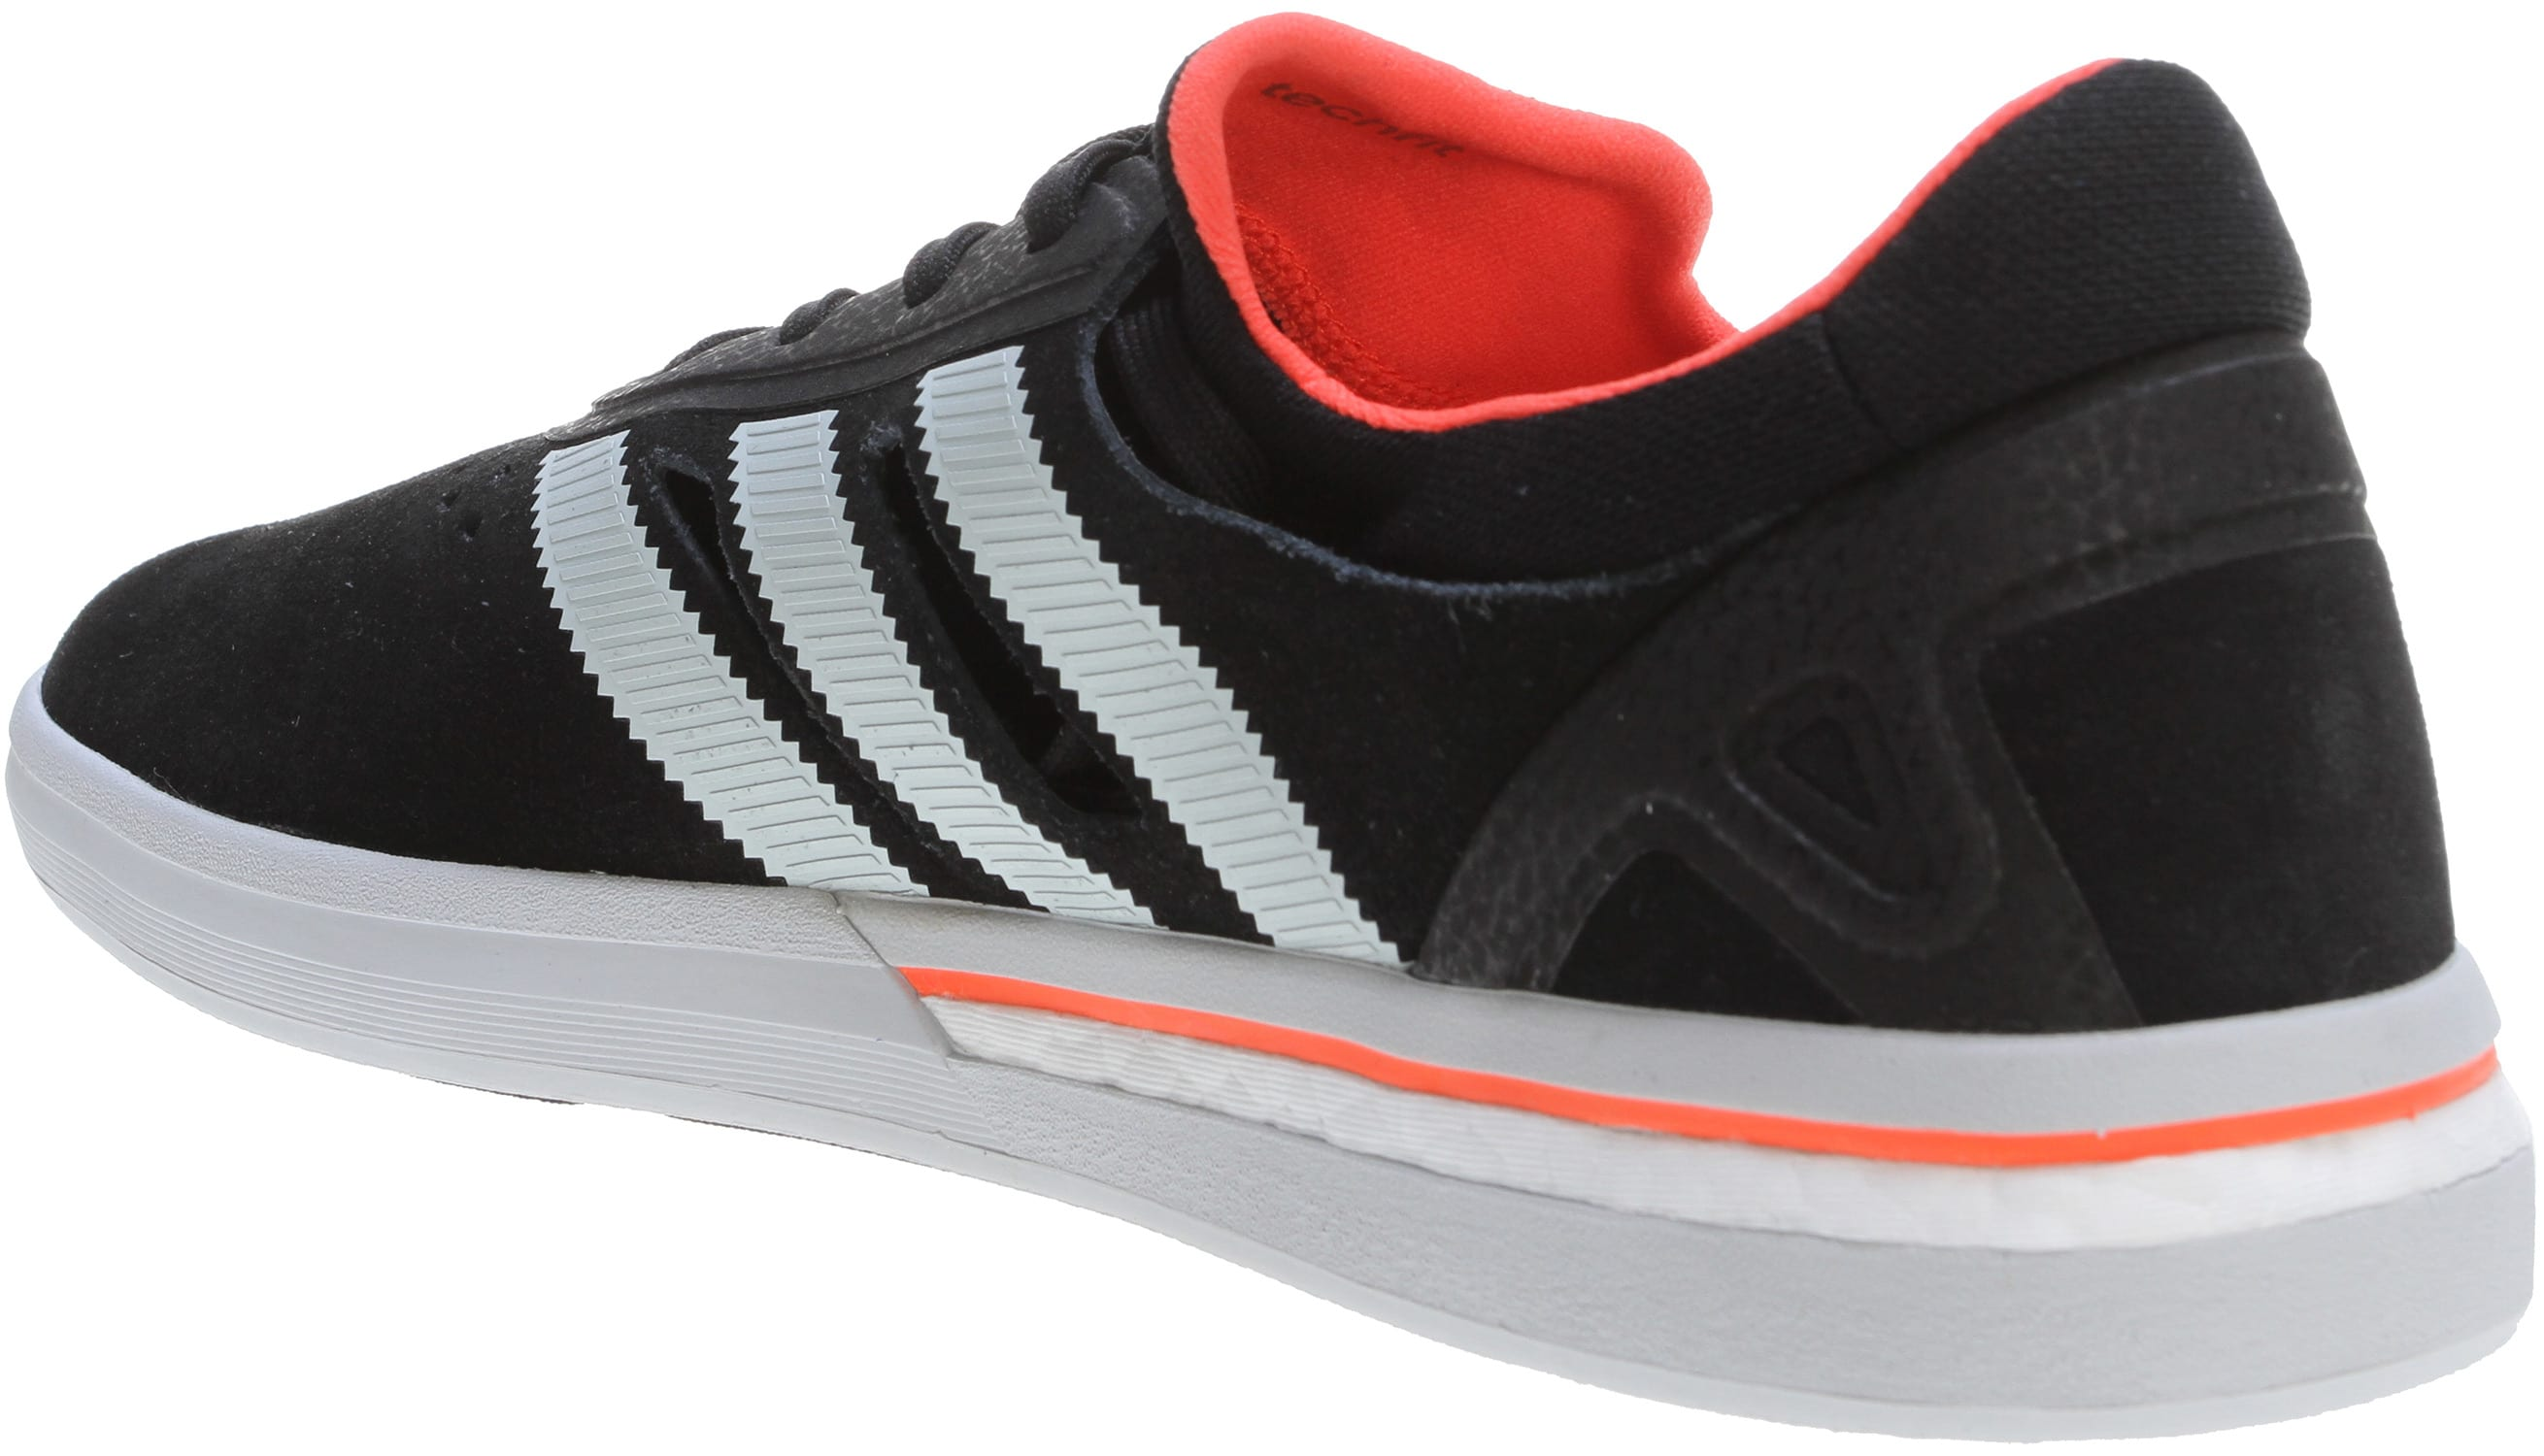 quality design 7356d 153be Adidas ADV Boost Skate Shoes - thumbnail 3